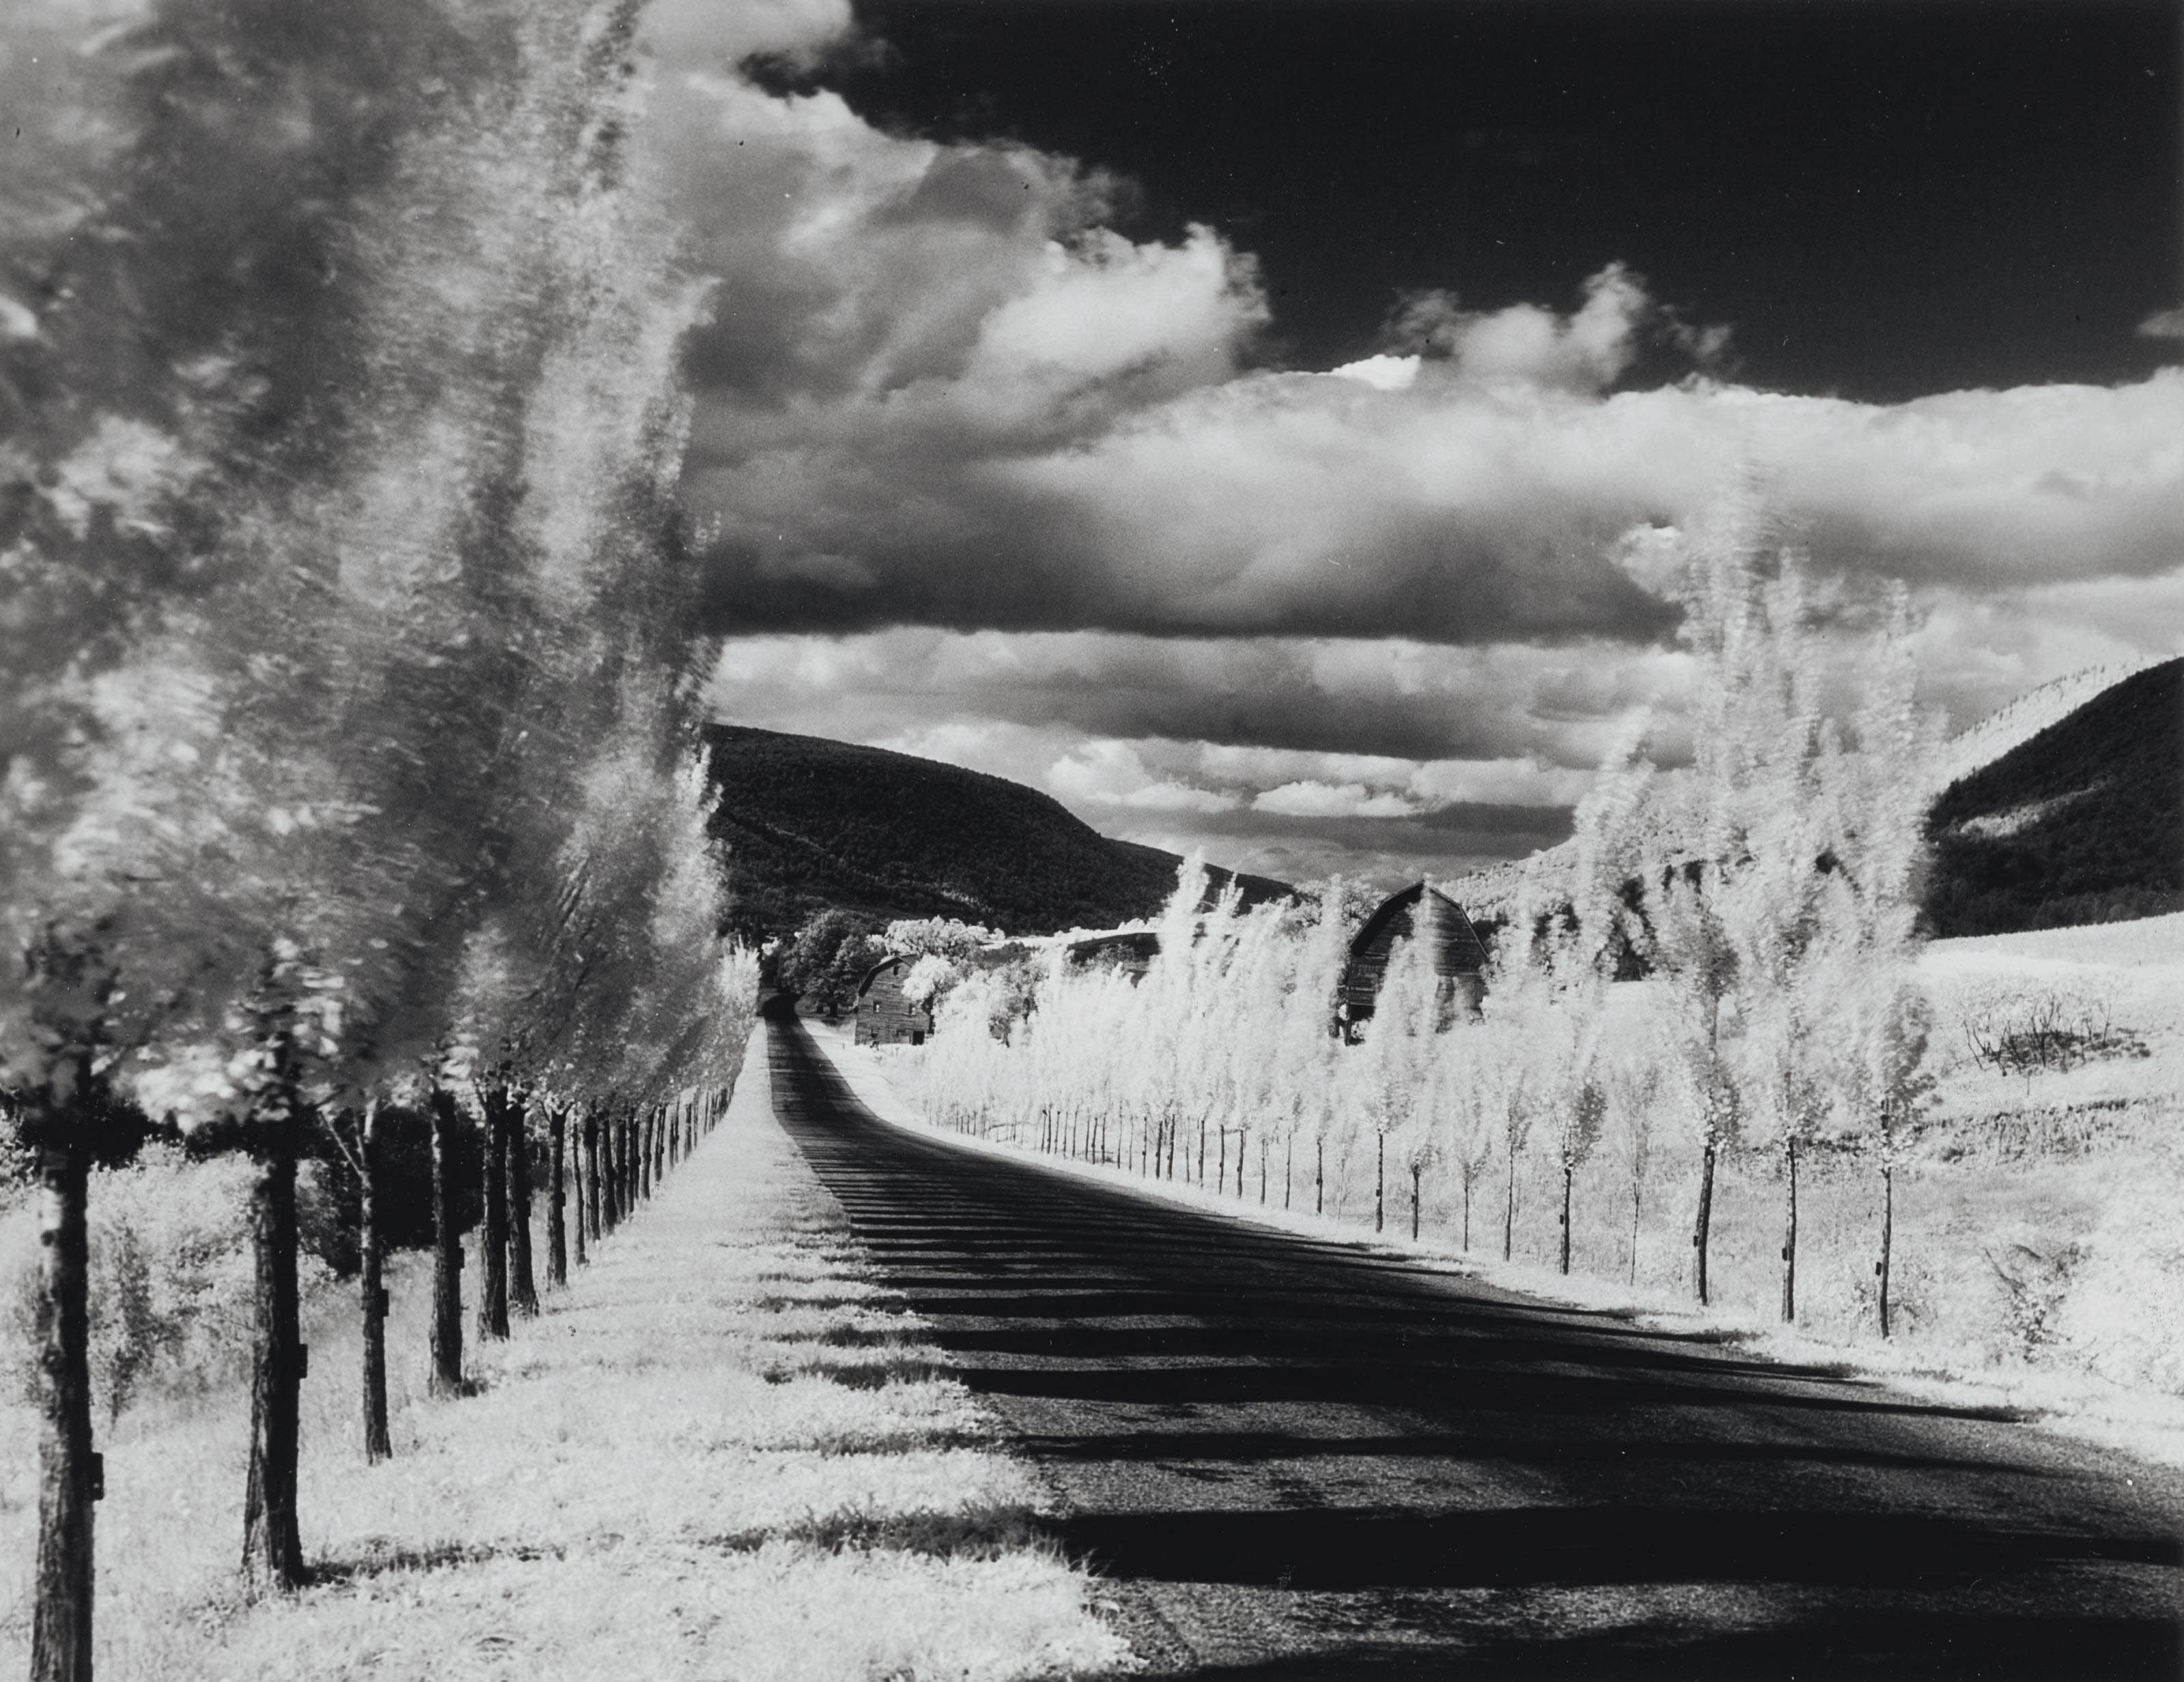 Road and Poplar Trees, in the Vicinity of Naples and Dansville, New York, 1955